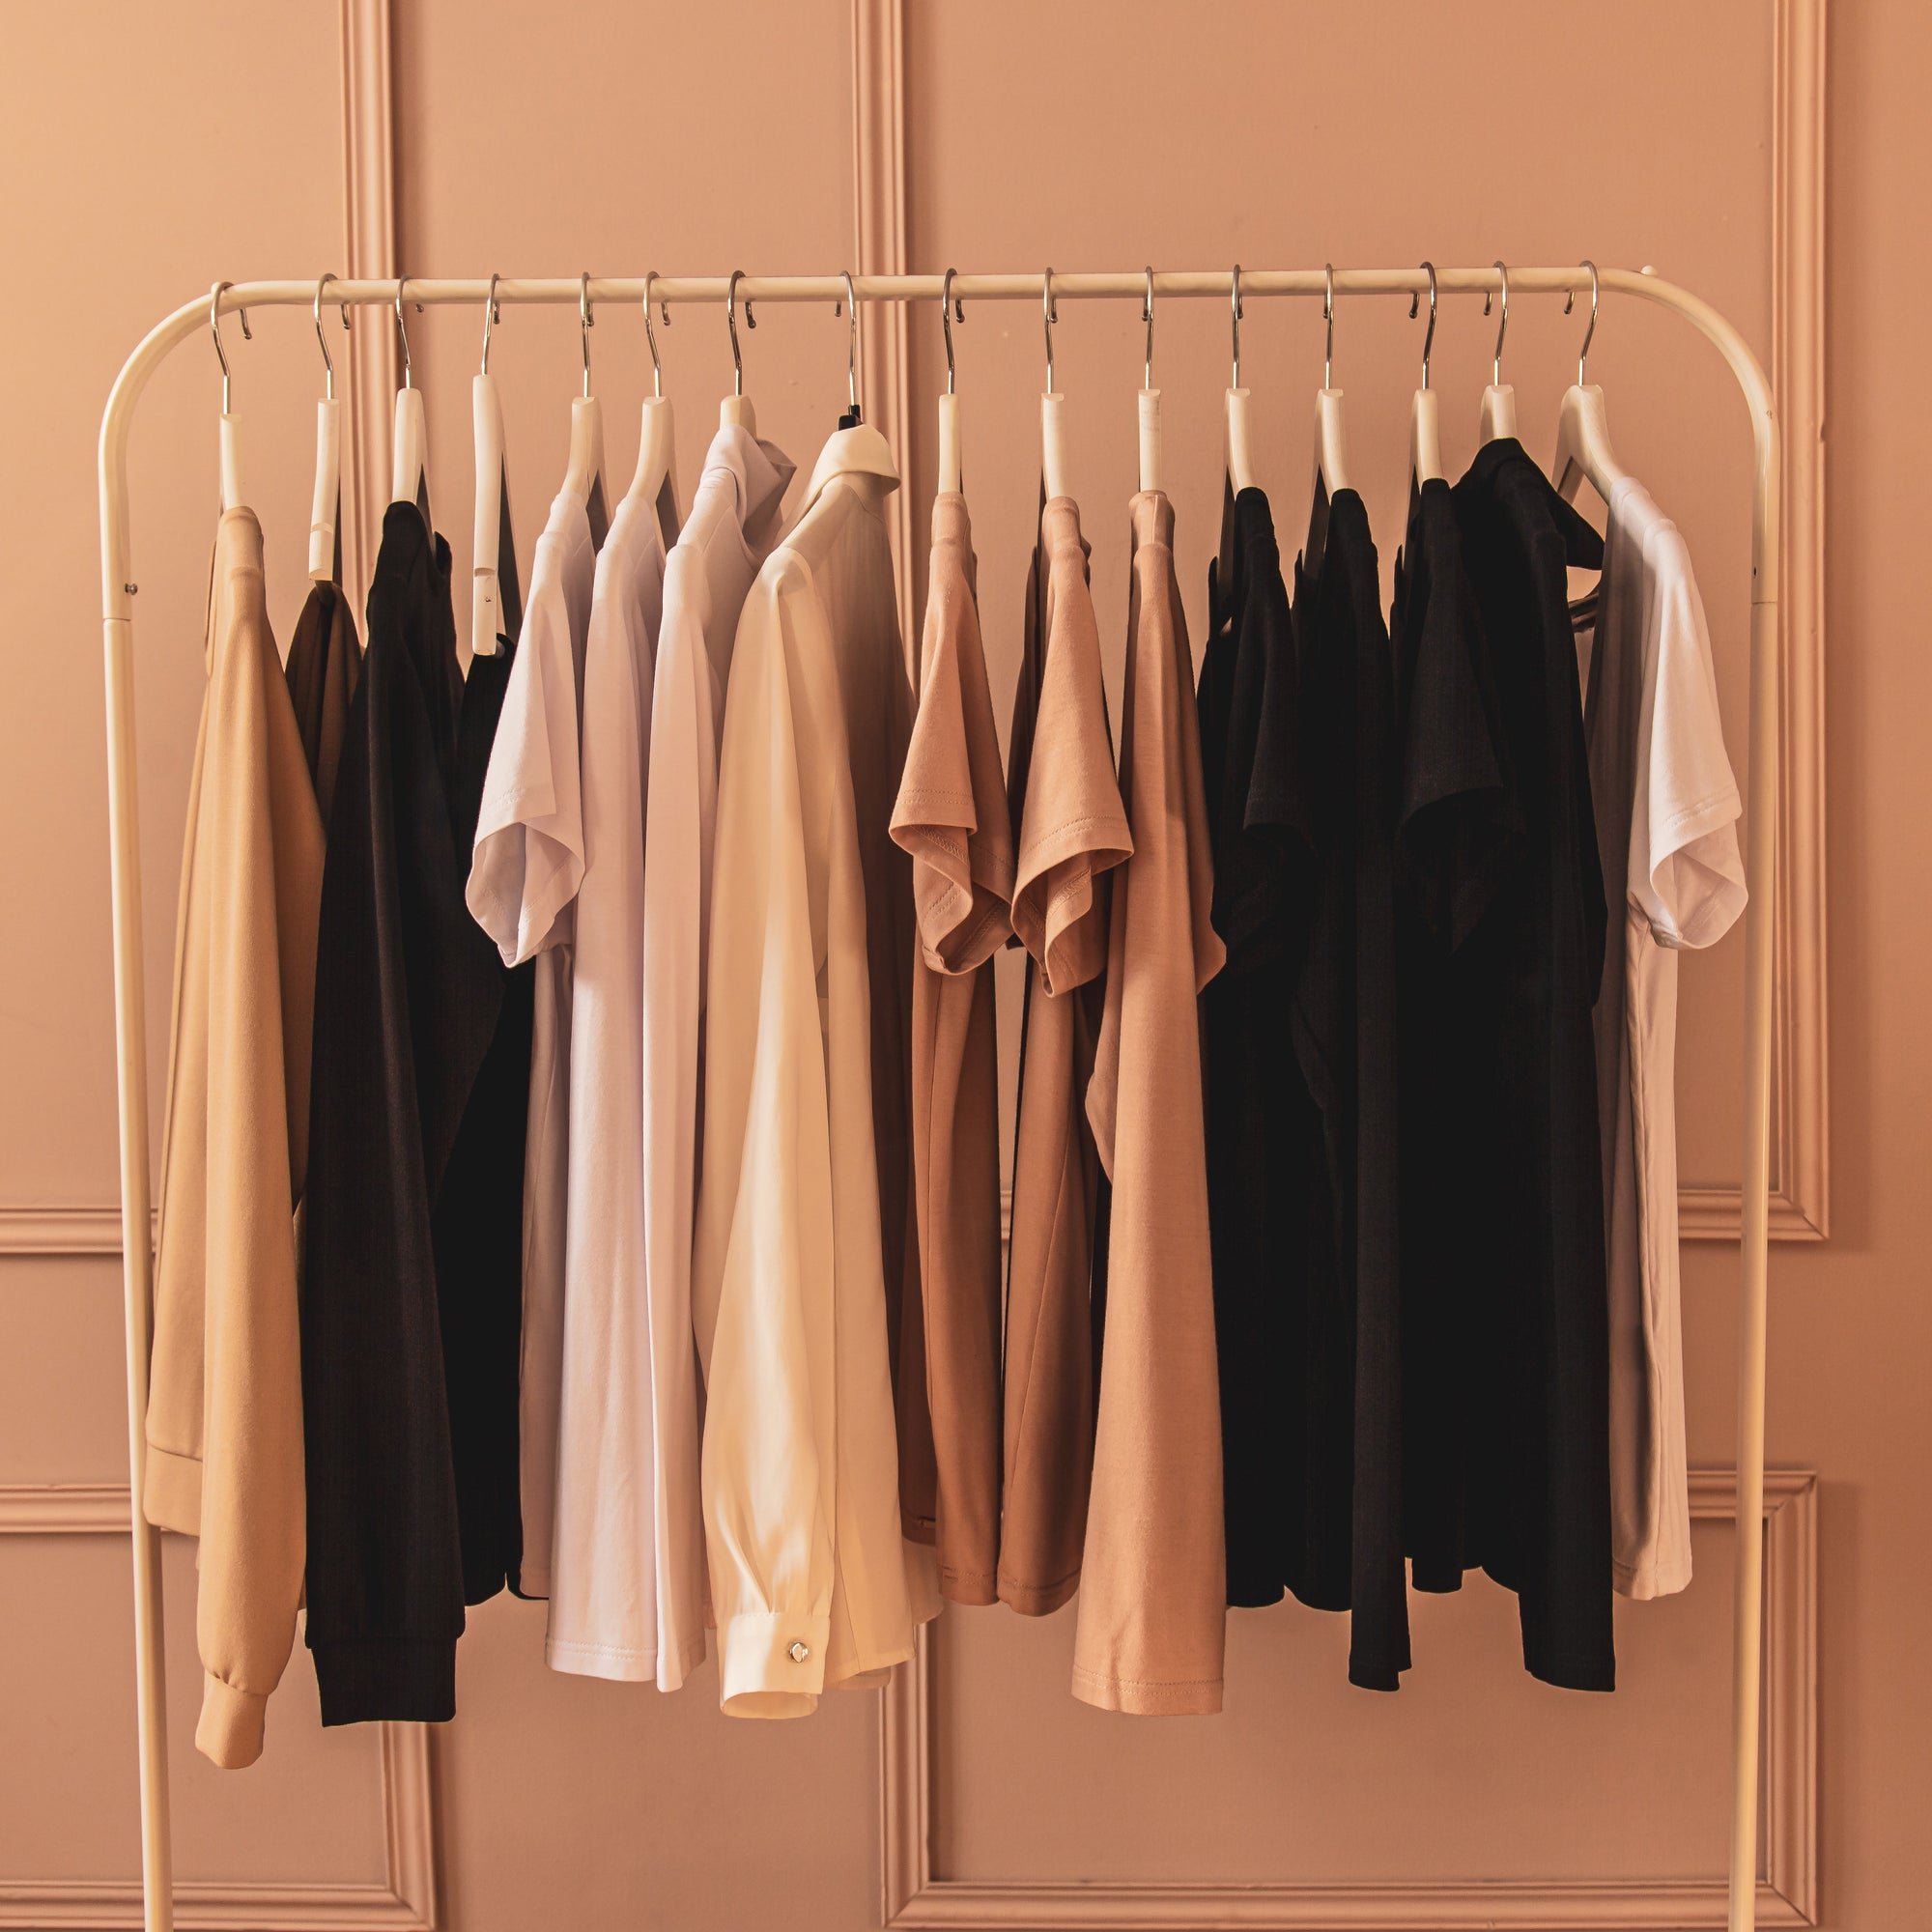 A newbie's guide to capsule wardrobes